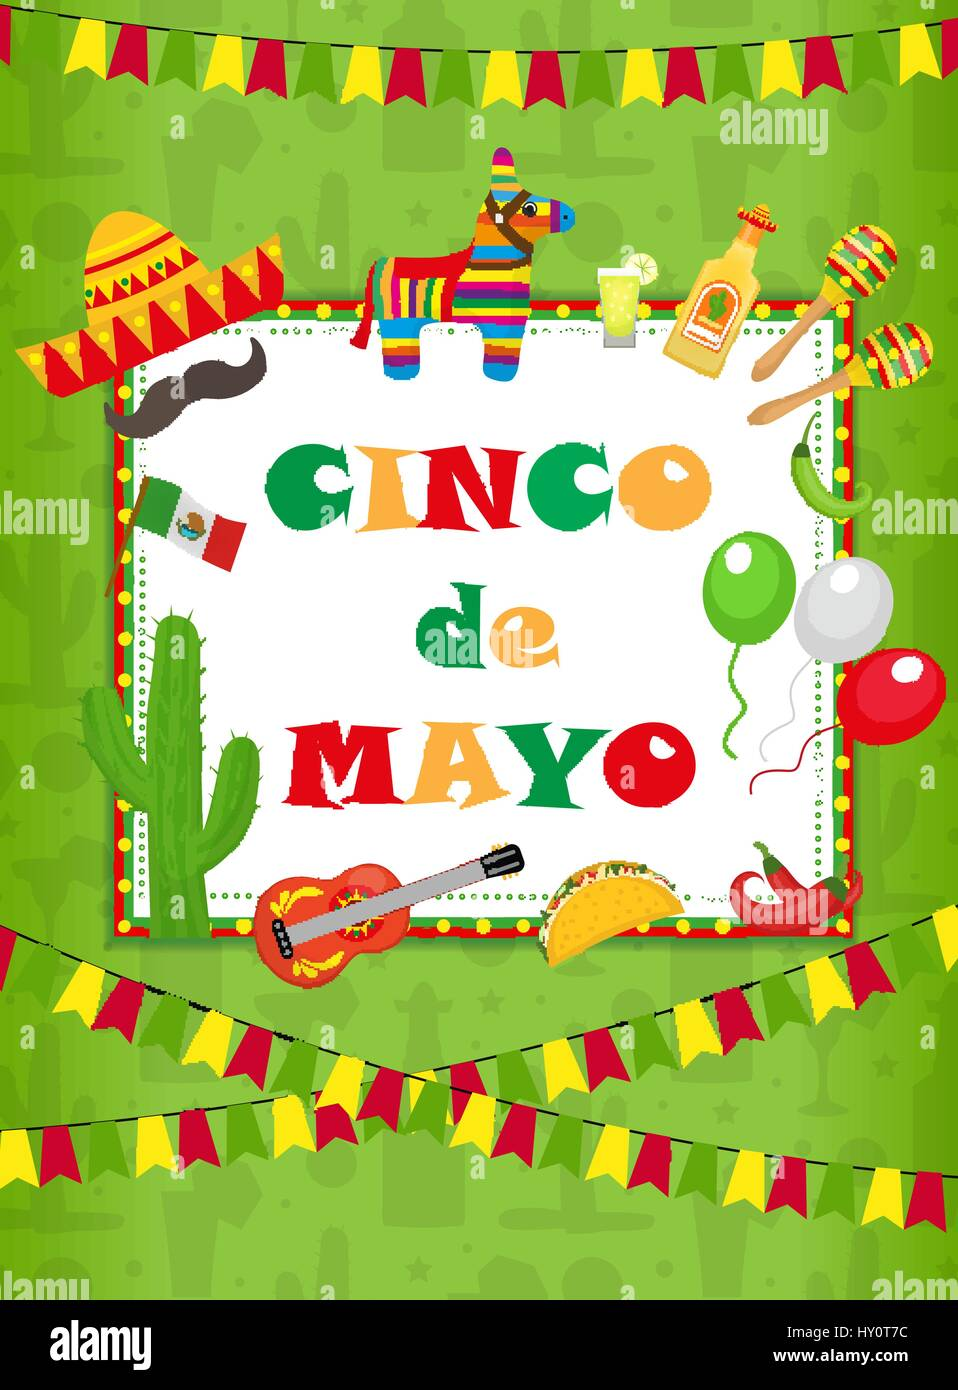 cinco de mayo greeting card template for flyer poster invitation